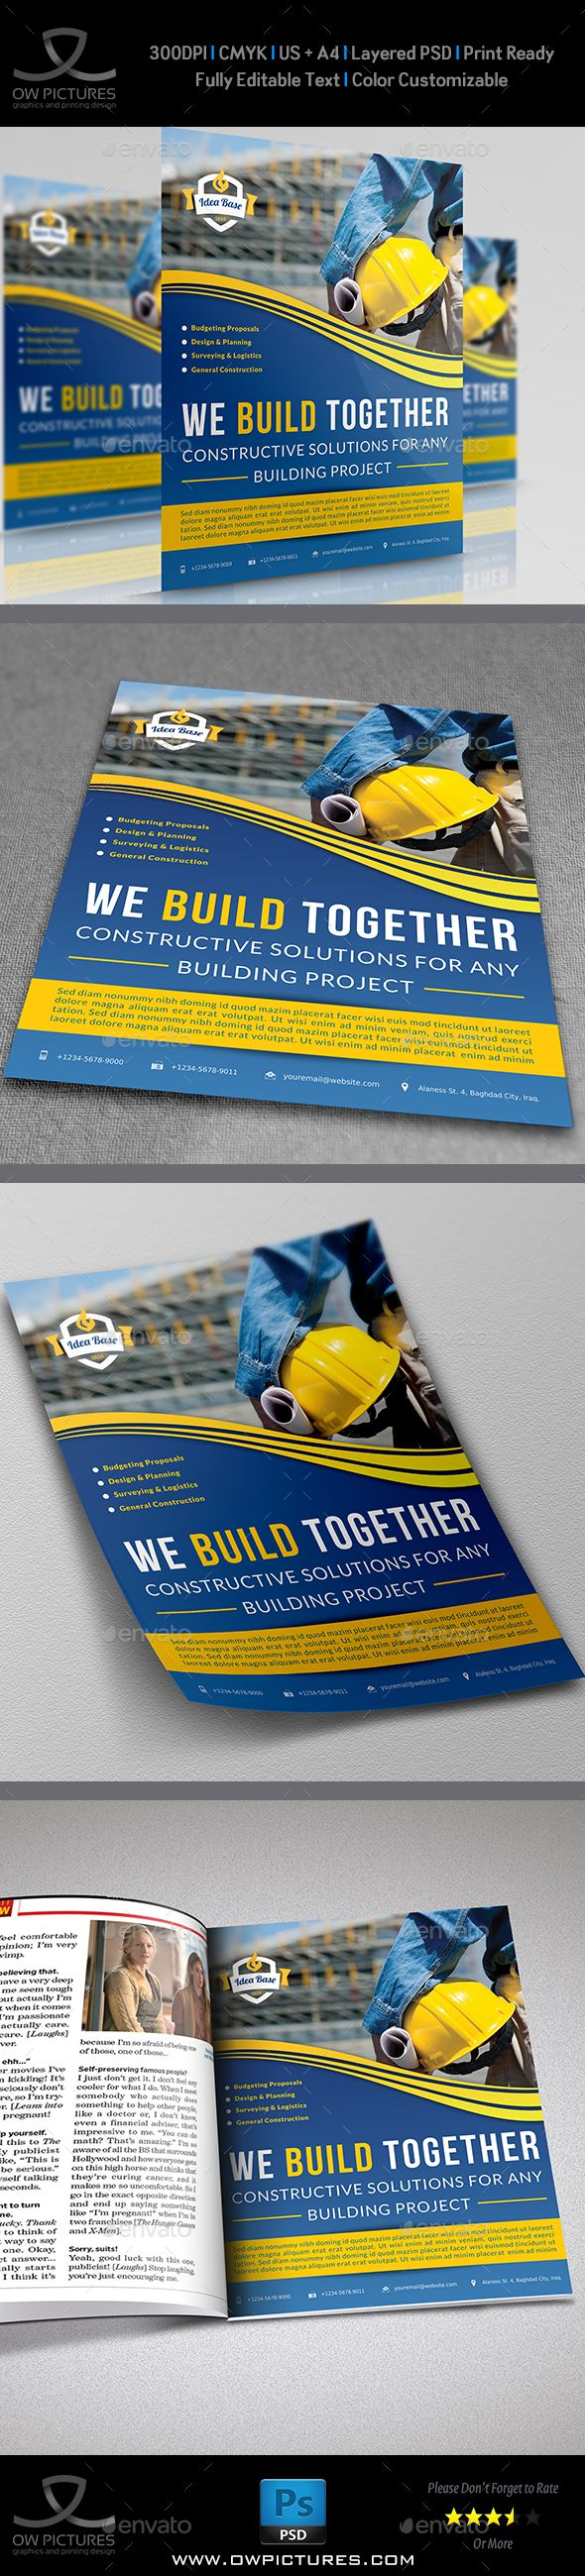 Construction Business Flyer Template Vol.2 — Photoshop PSD #engineering #rail • Available here → https://graphicriver.net/item/construction-business-flyer-template-vol2/7602389?ref=pxcr